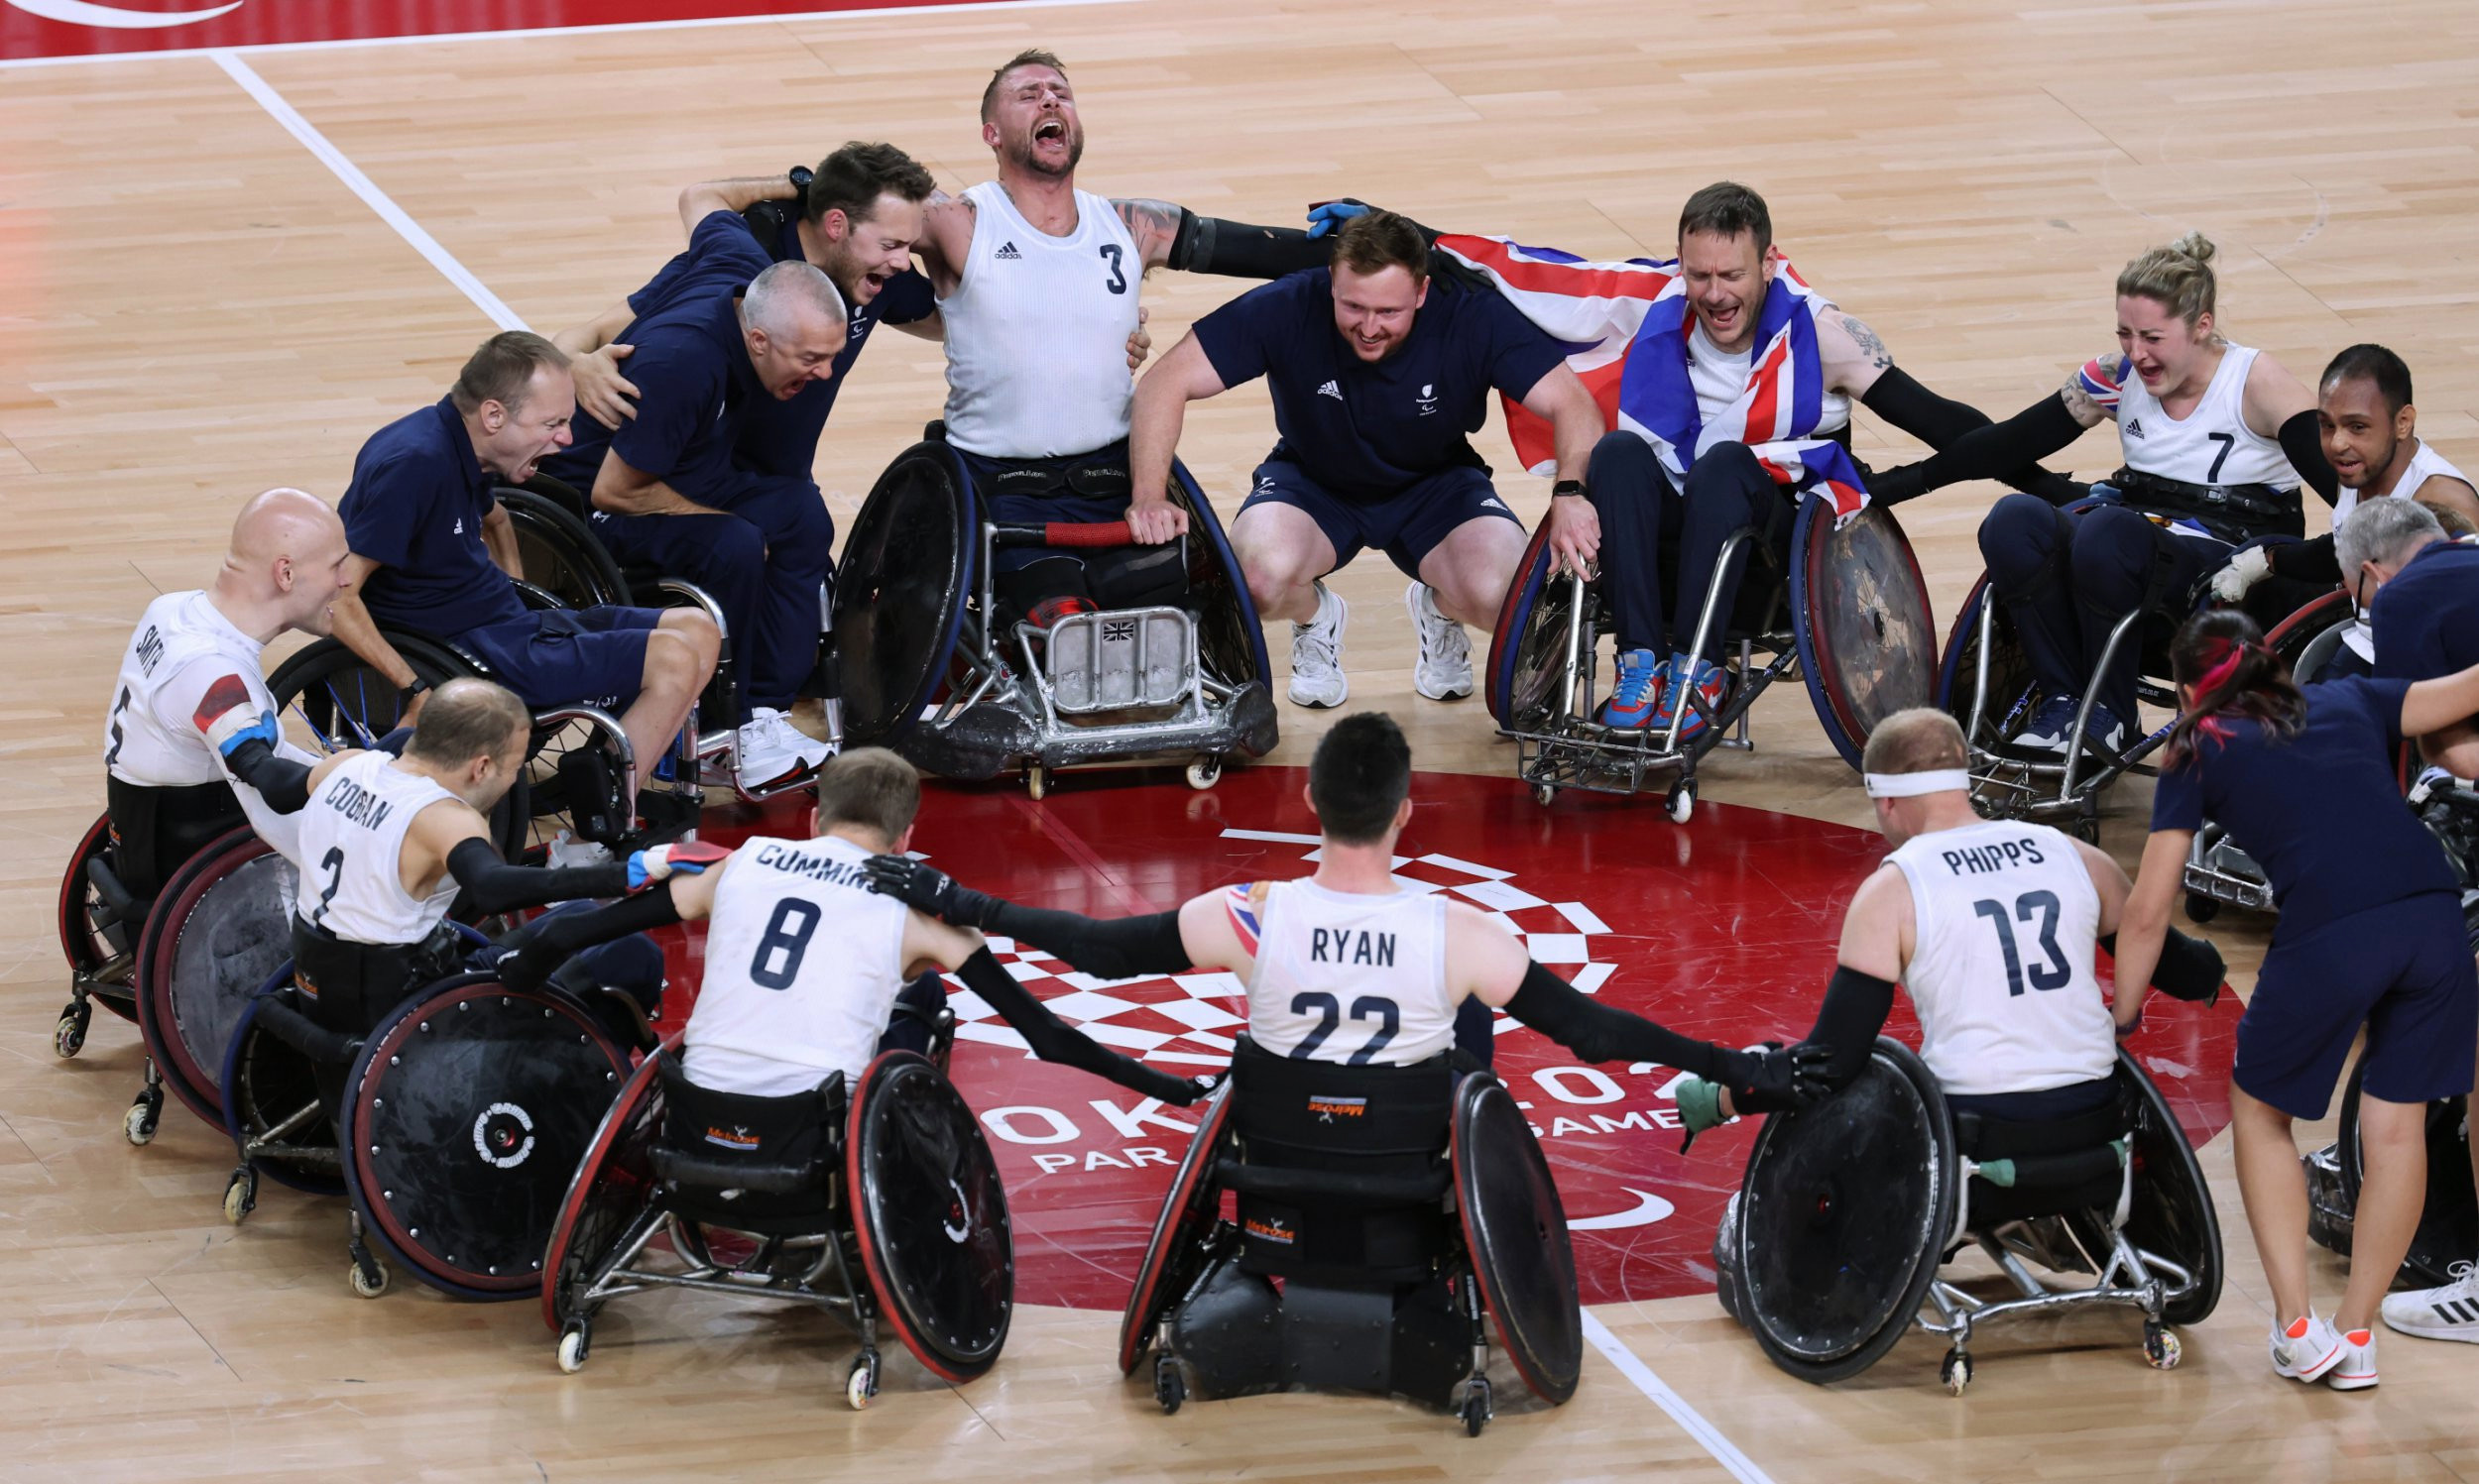 Team GB win historic gold medal in wheelchair rugby at the Paralympic Games